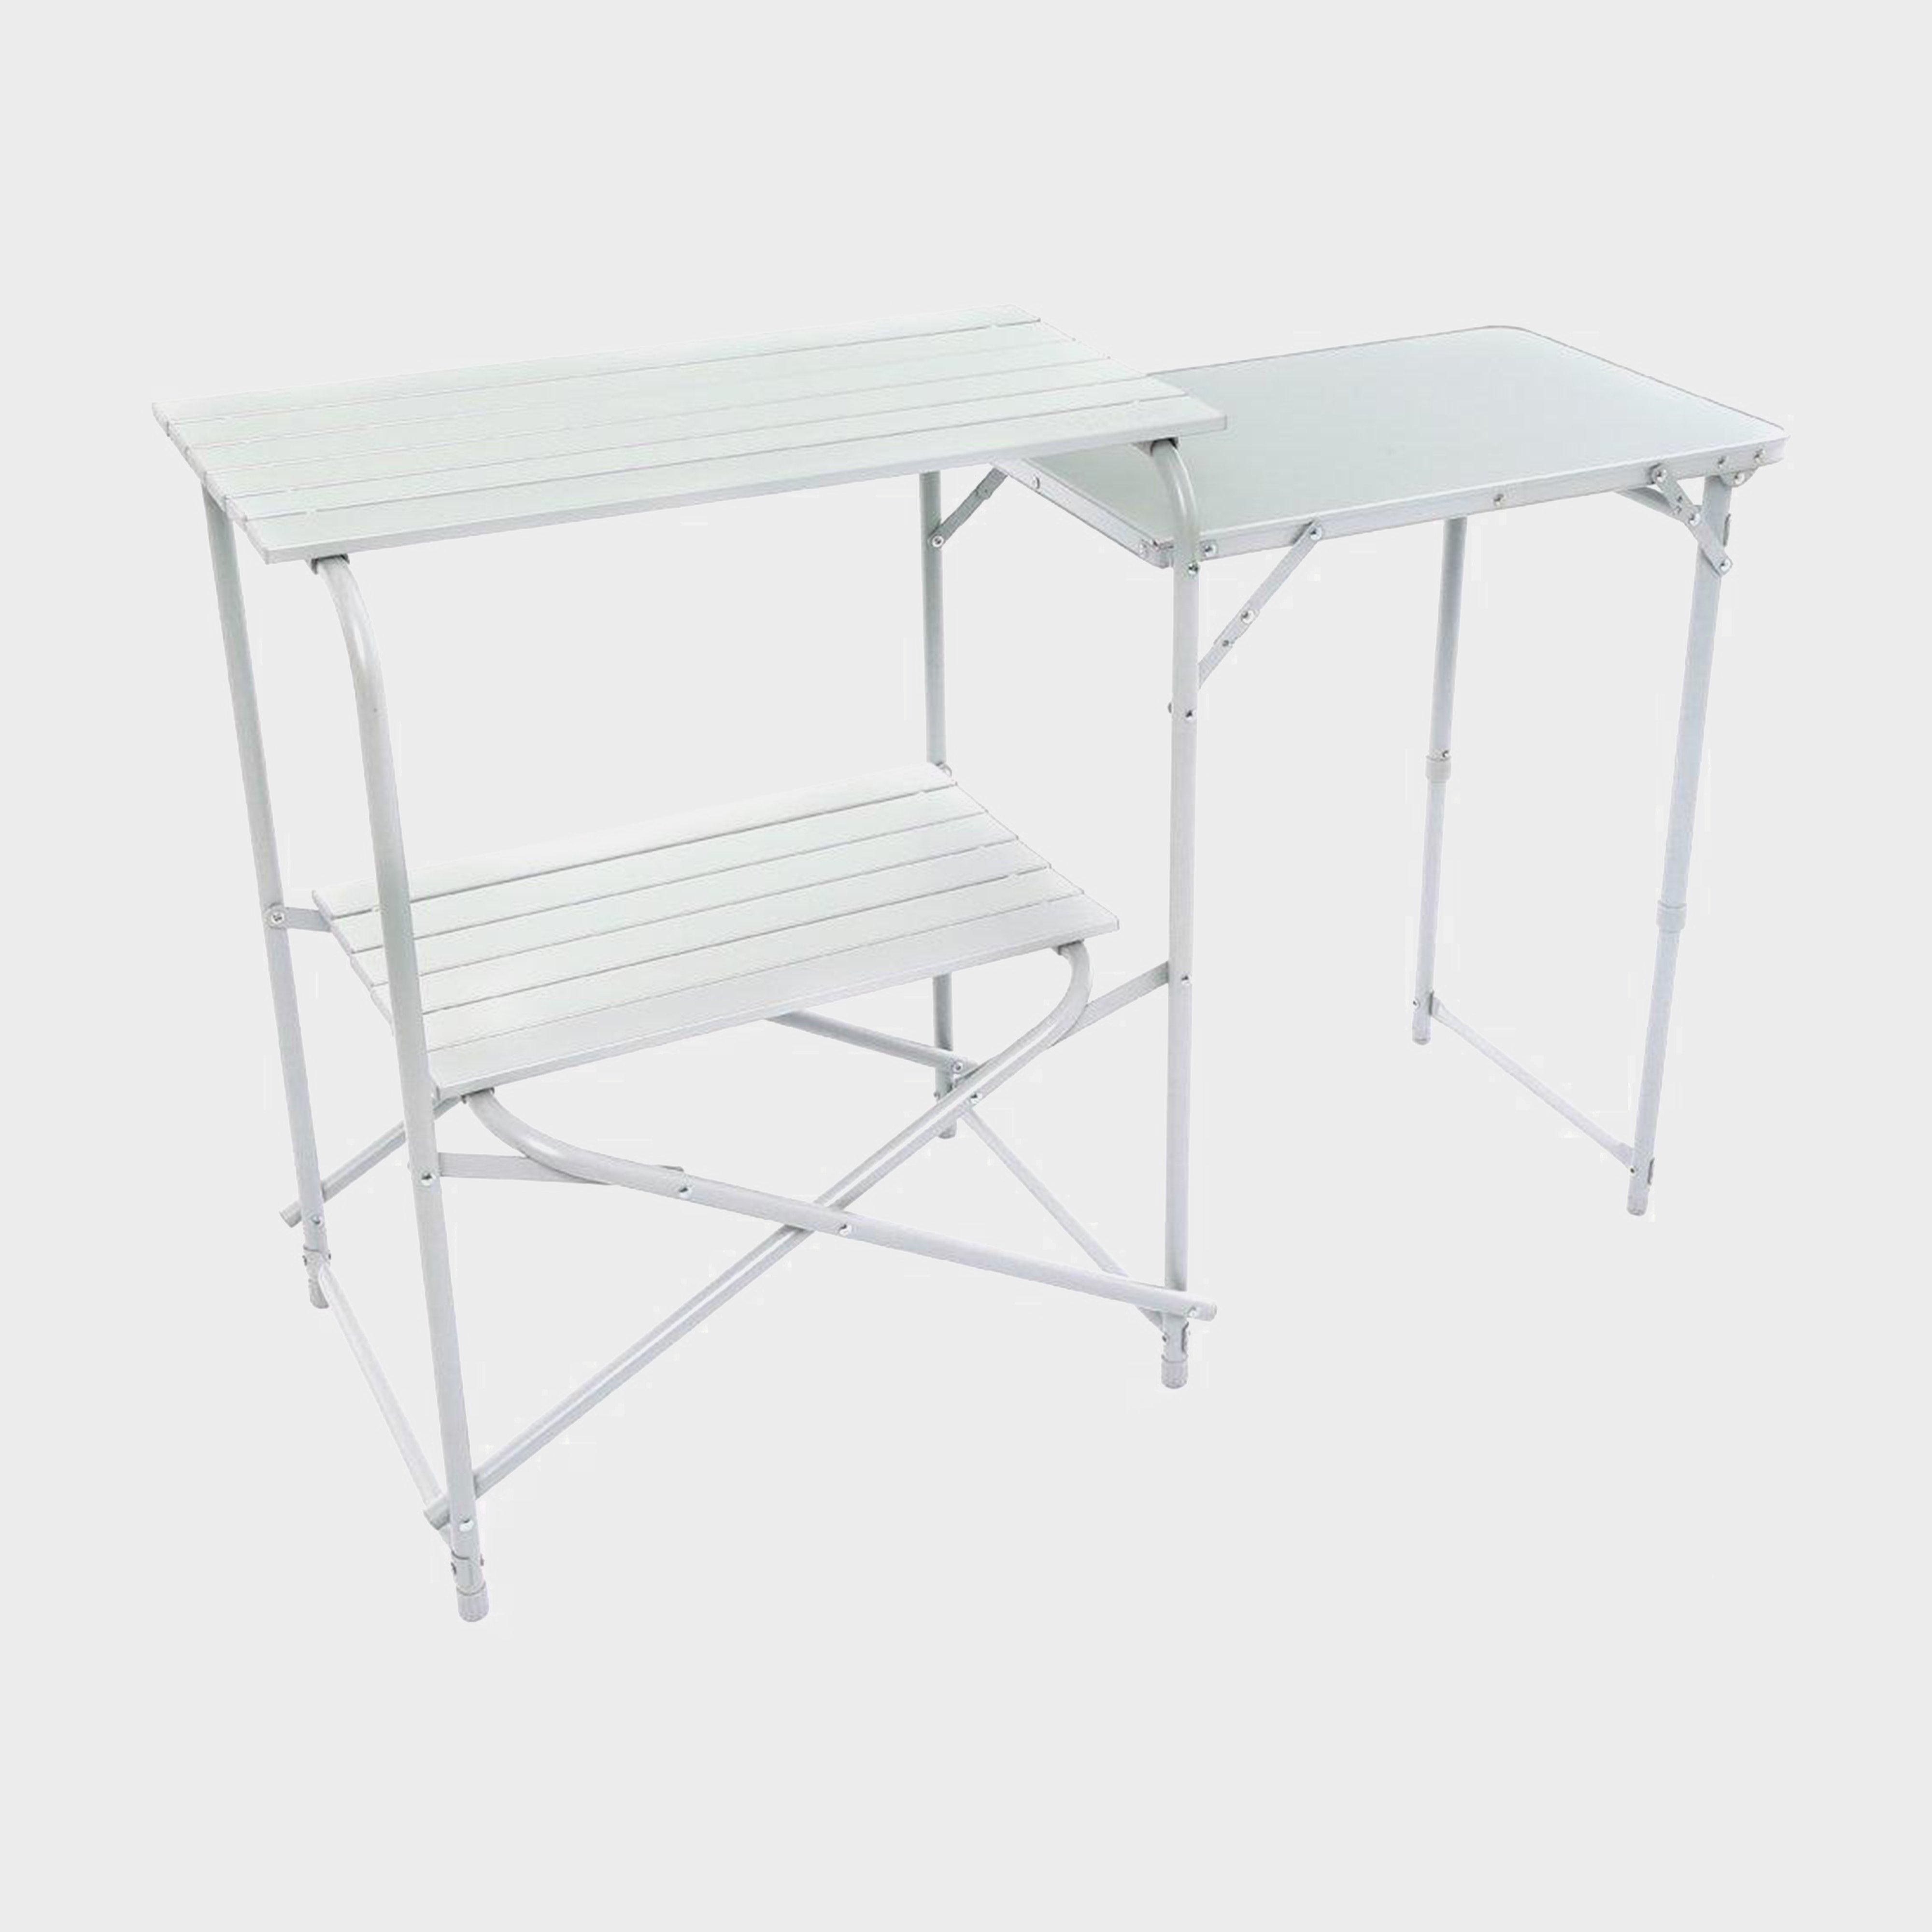 Hi-Gear Elite Kitchen Stand - Grey/With, Grey/WITH